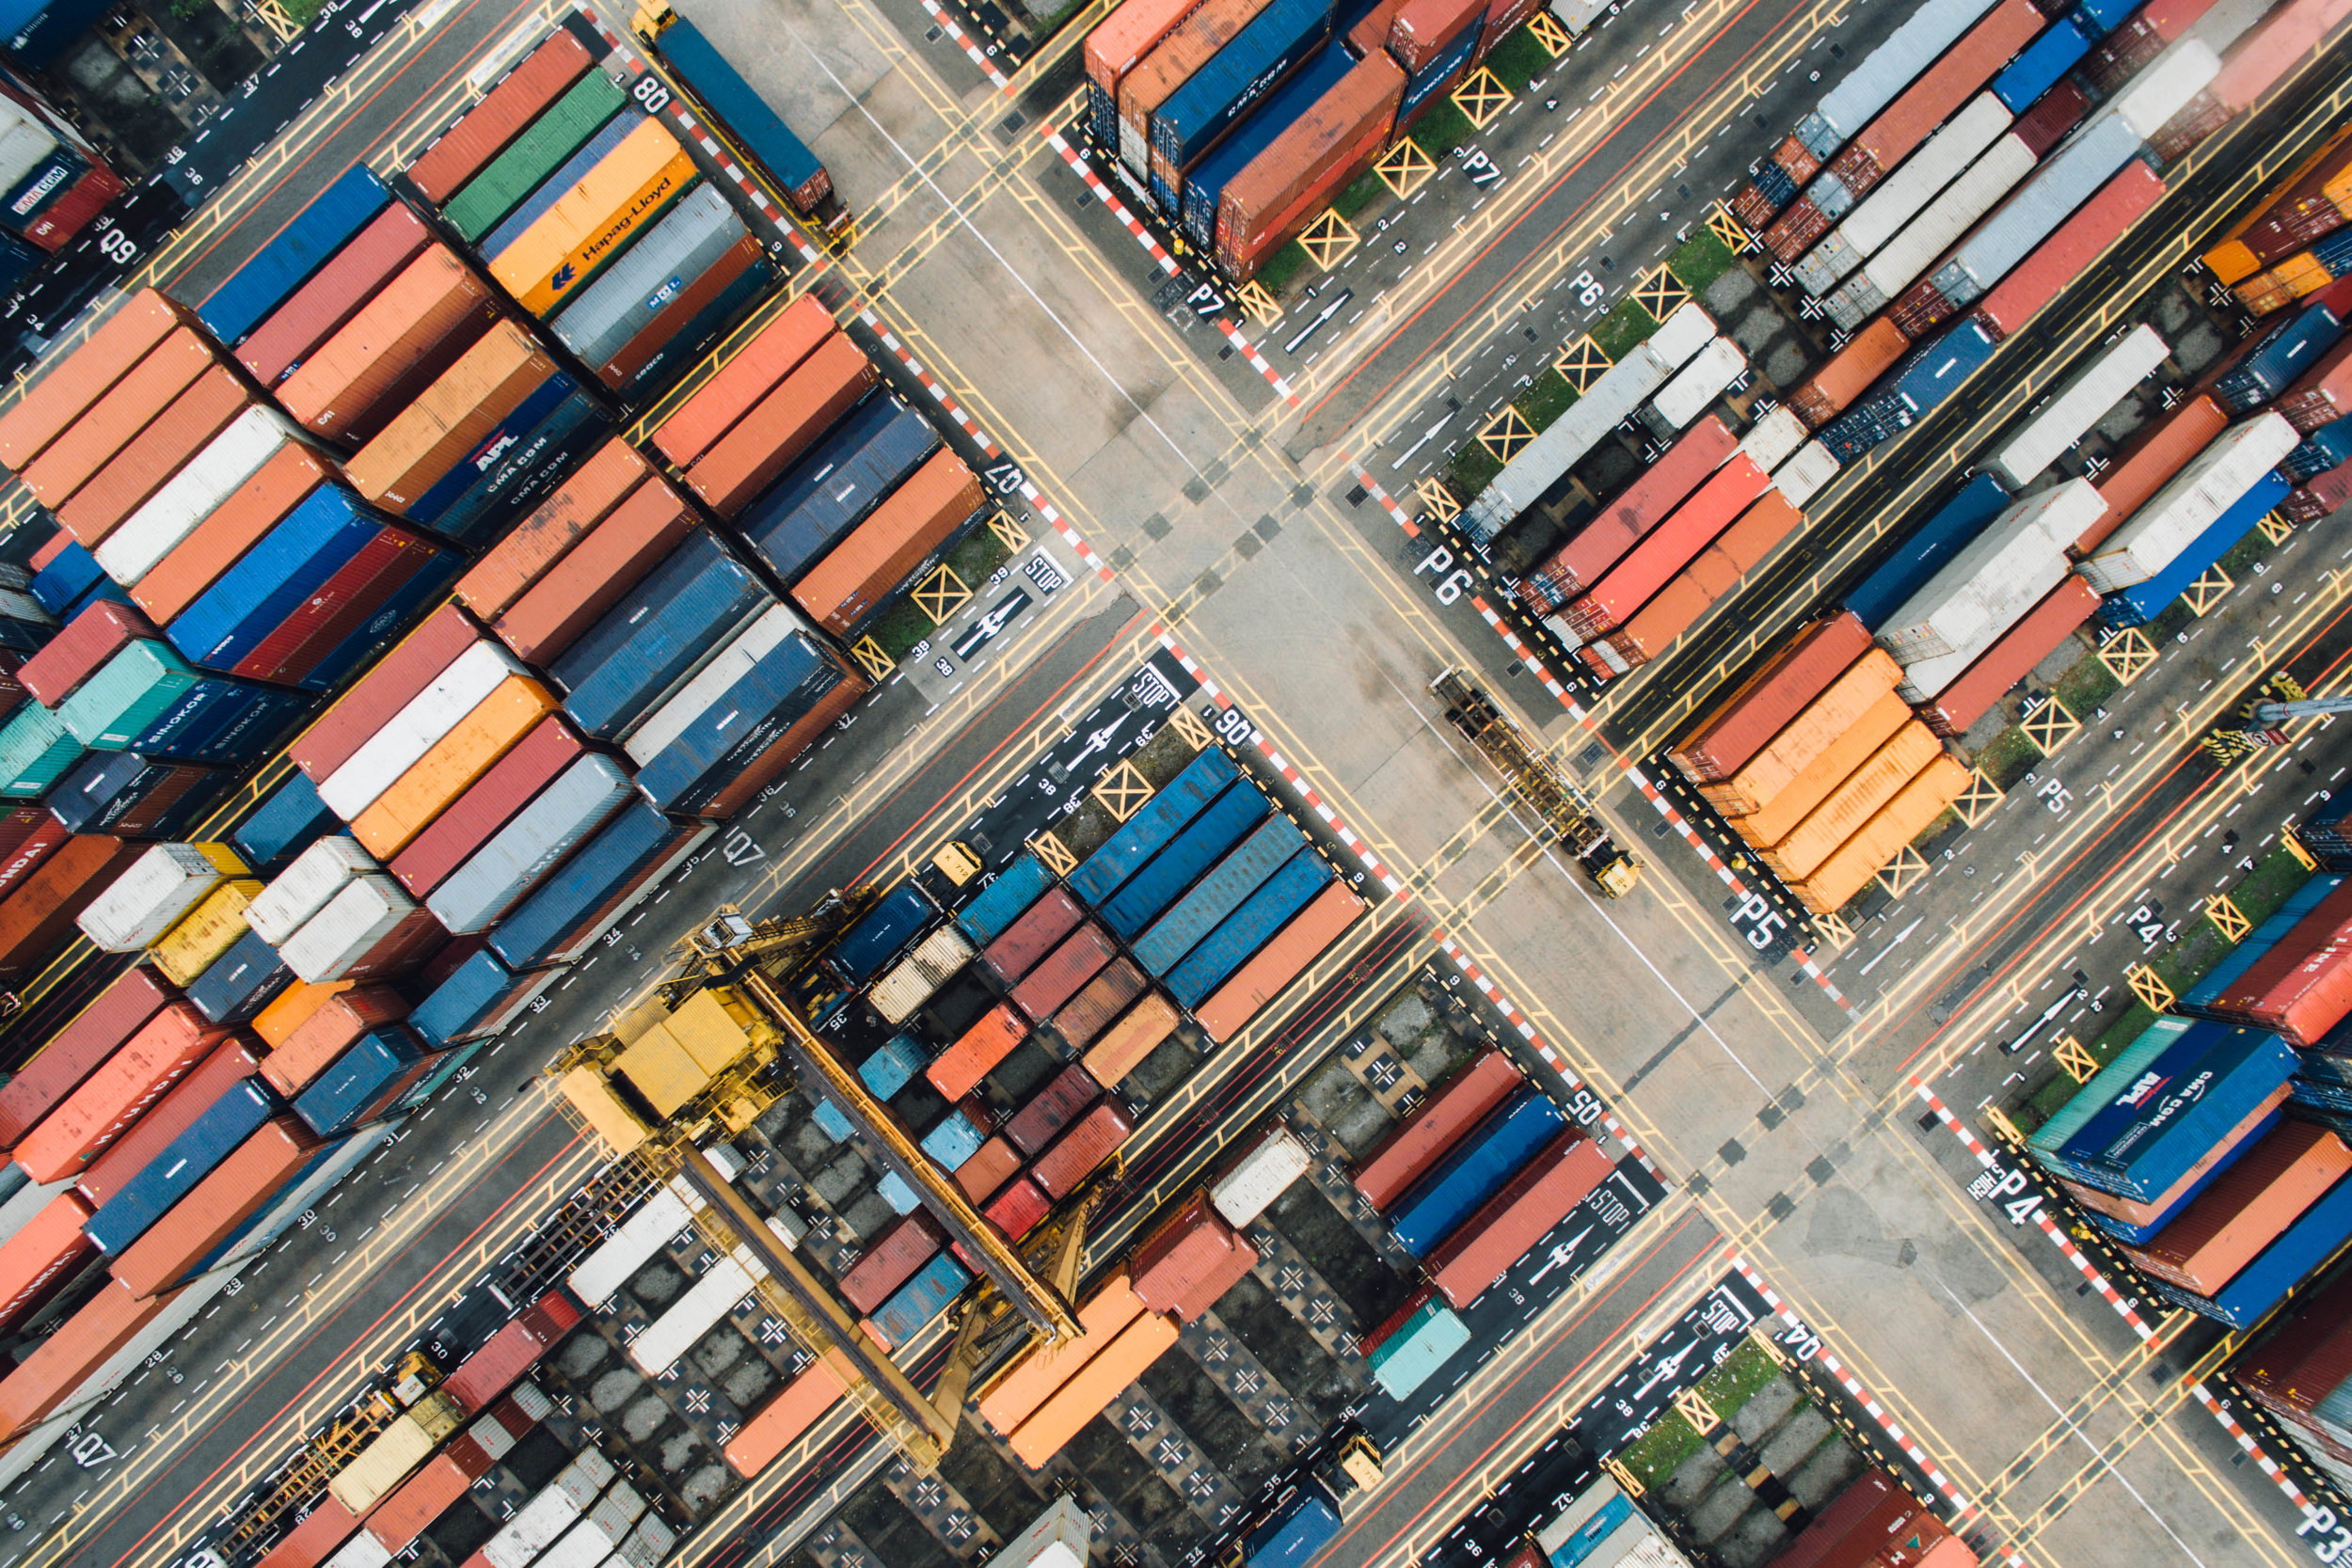 Trade - Merchat Trade connects your business to over 231 million suppliers from around the world. Allowing you to seamlessly grow your business and brand while saving time, resources and money.